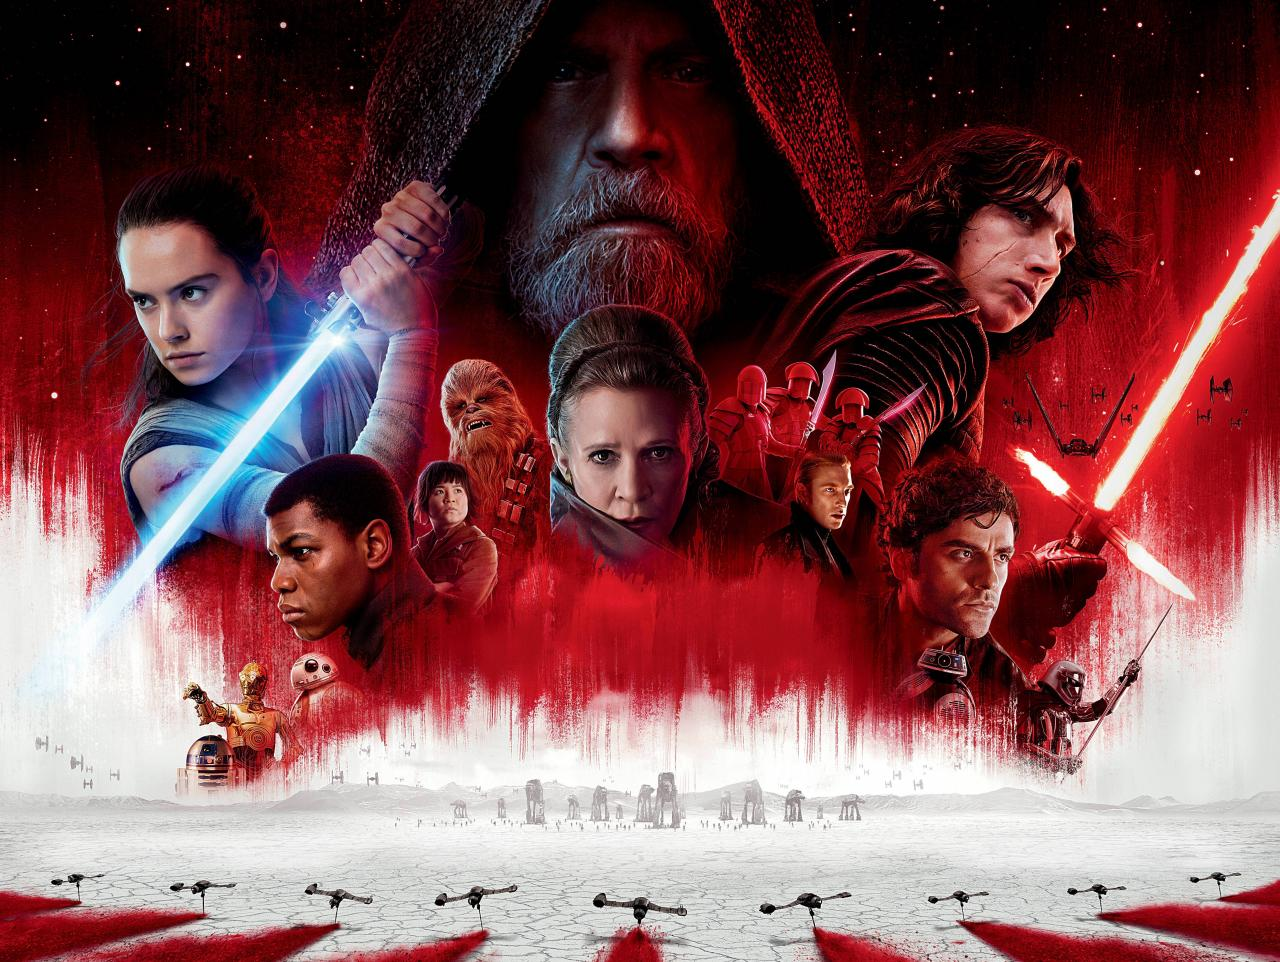 Wallpaper Star Wars 8  Affiche Luke Skywalker Cinema Video